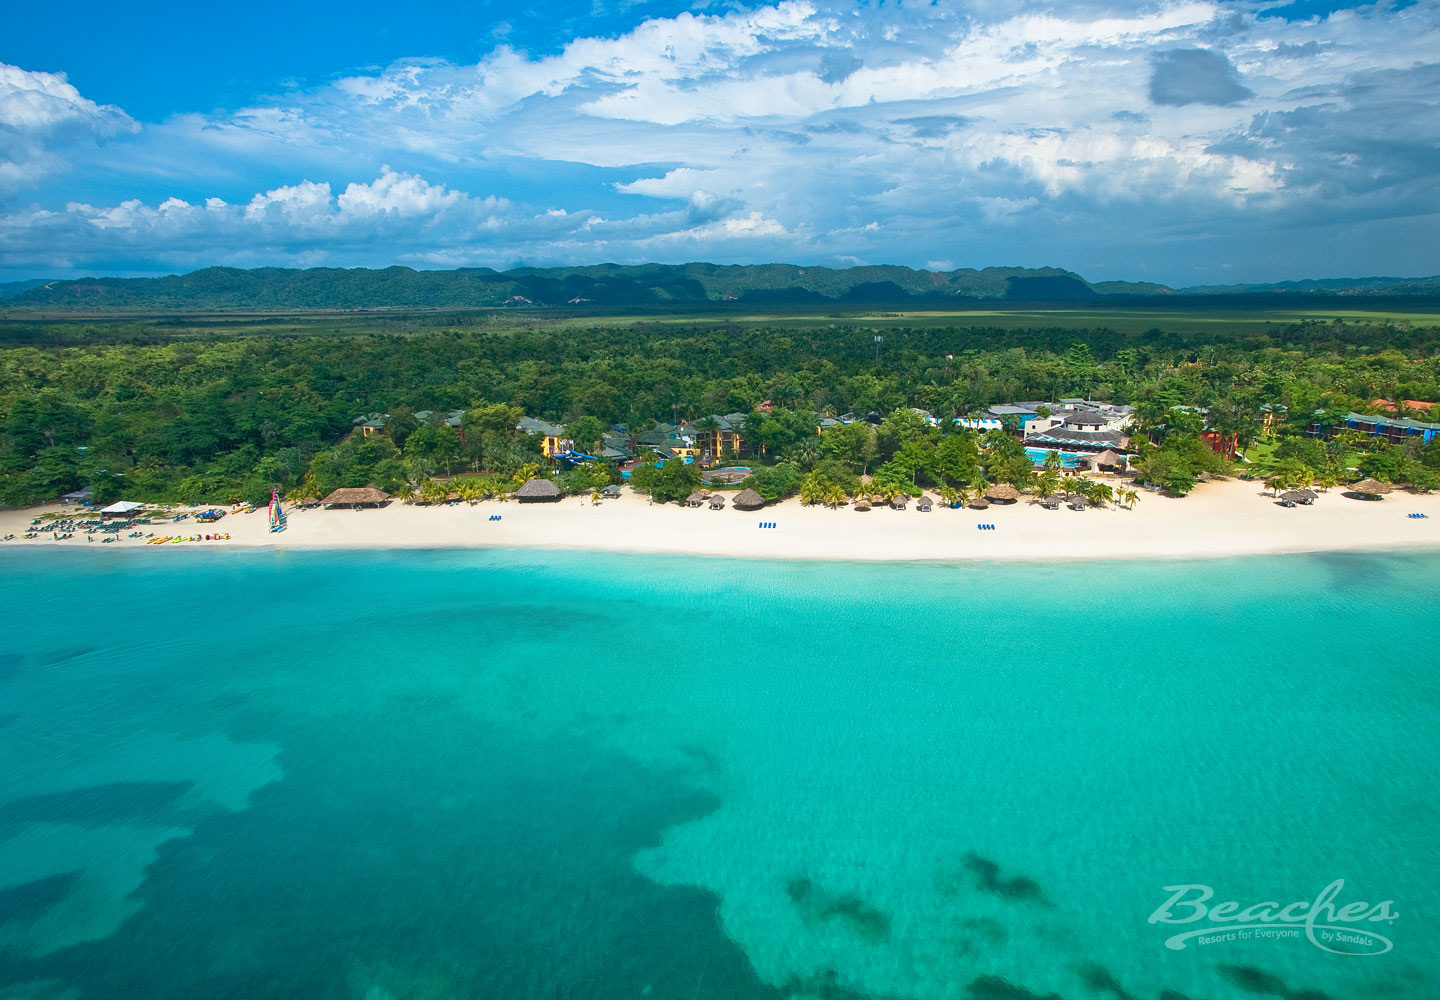 Travel Agency All-Inclusive Resort Beaches Negril 001